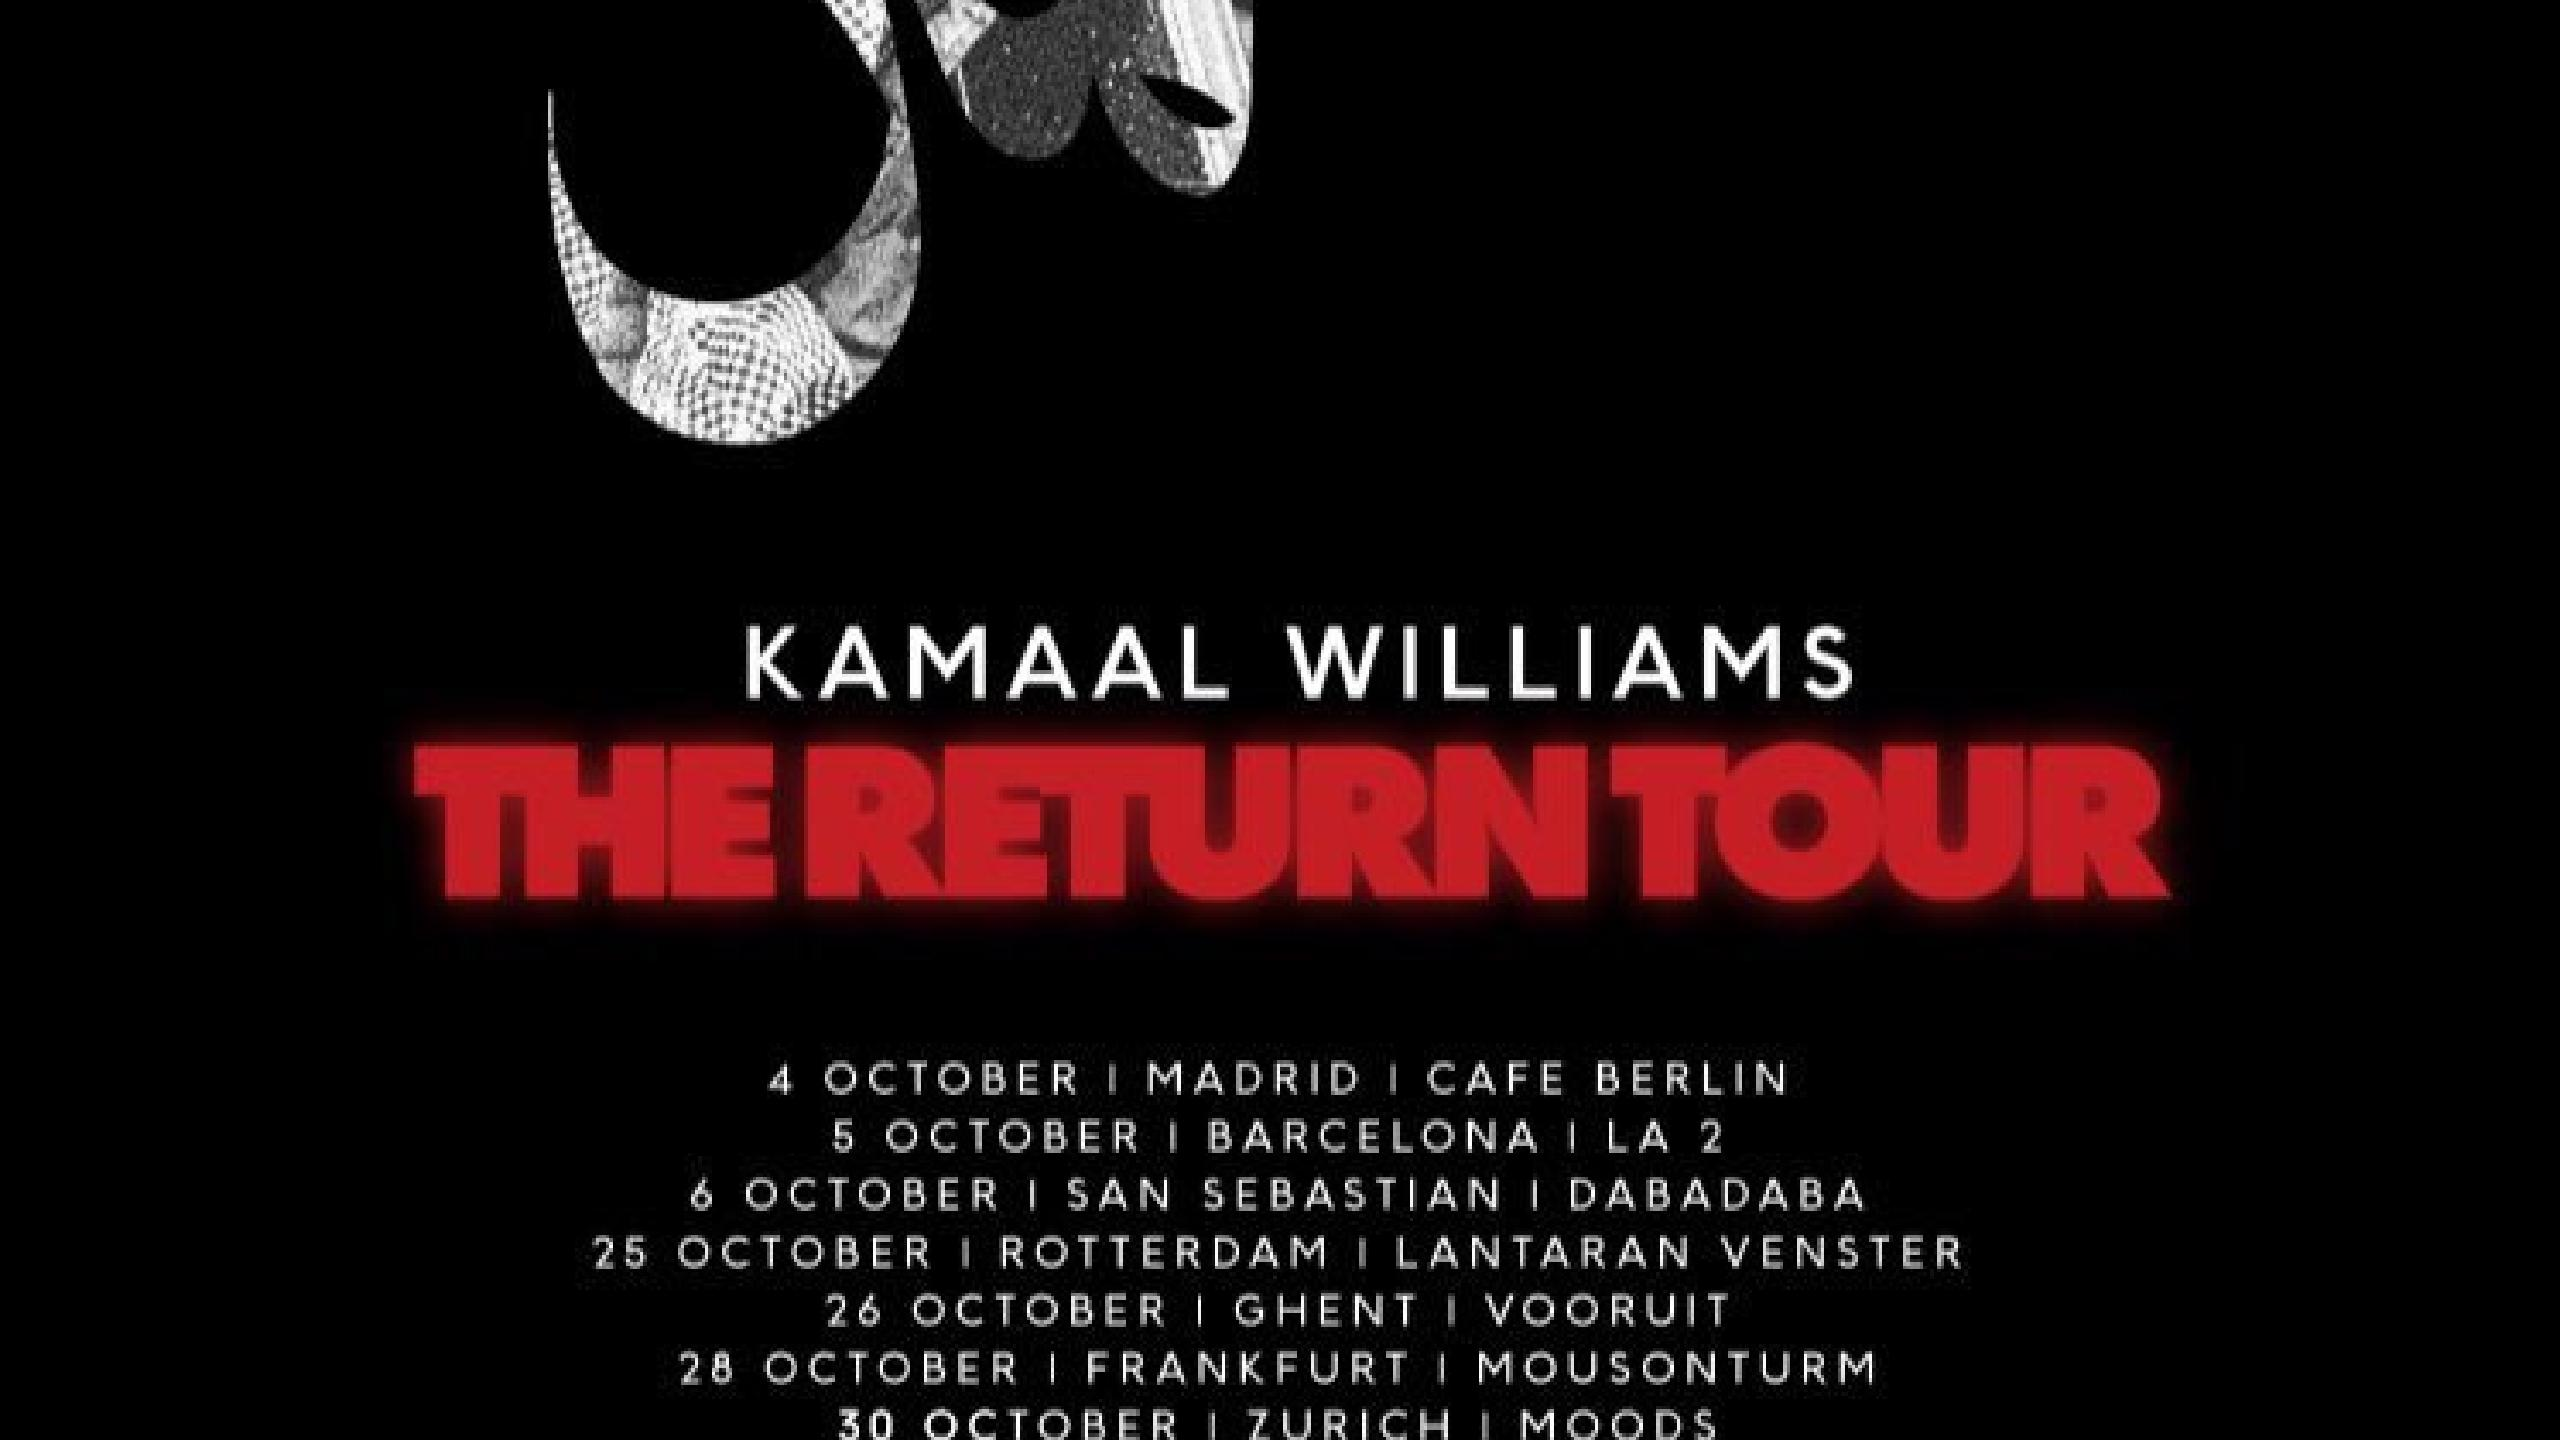 Arte Concert King Krule Kamaal Williams Concert In Madrid Tickets Cool Stage Thursday